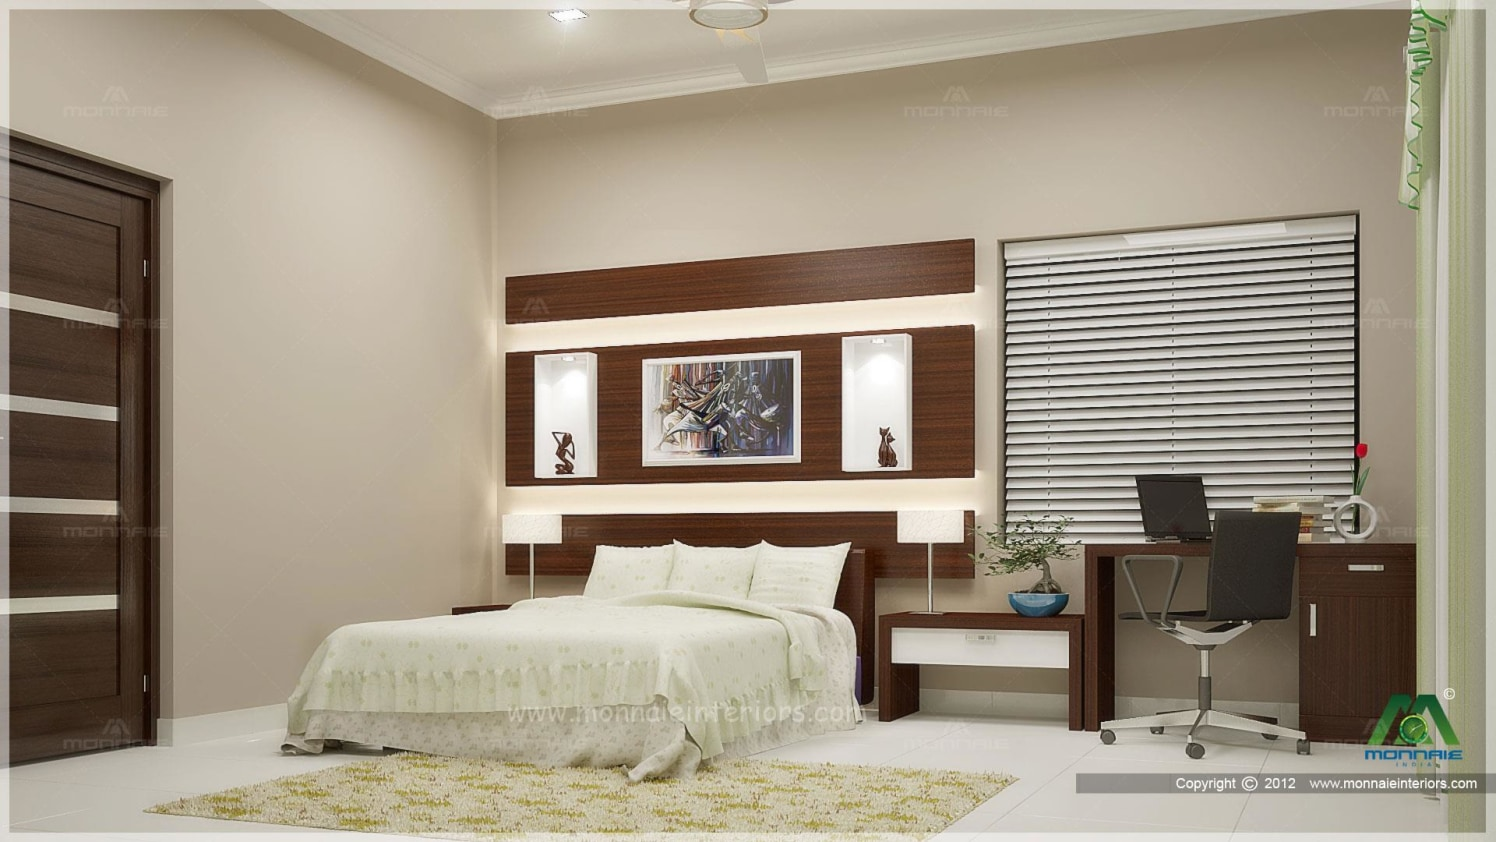 Off White And Antique Cherry Shaded Bedroom With brown Study Table by Monnaie Architects Bedroom Contemporary | Interior Design Photos & Ideas